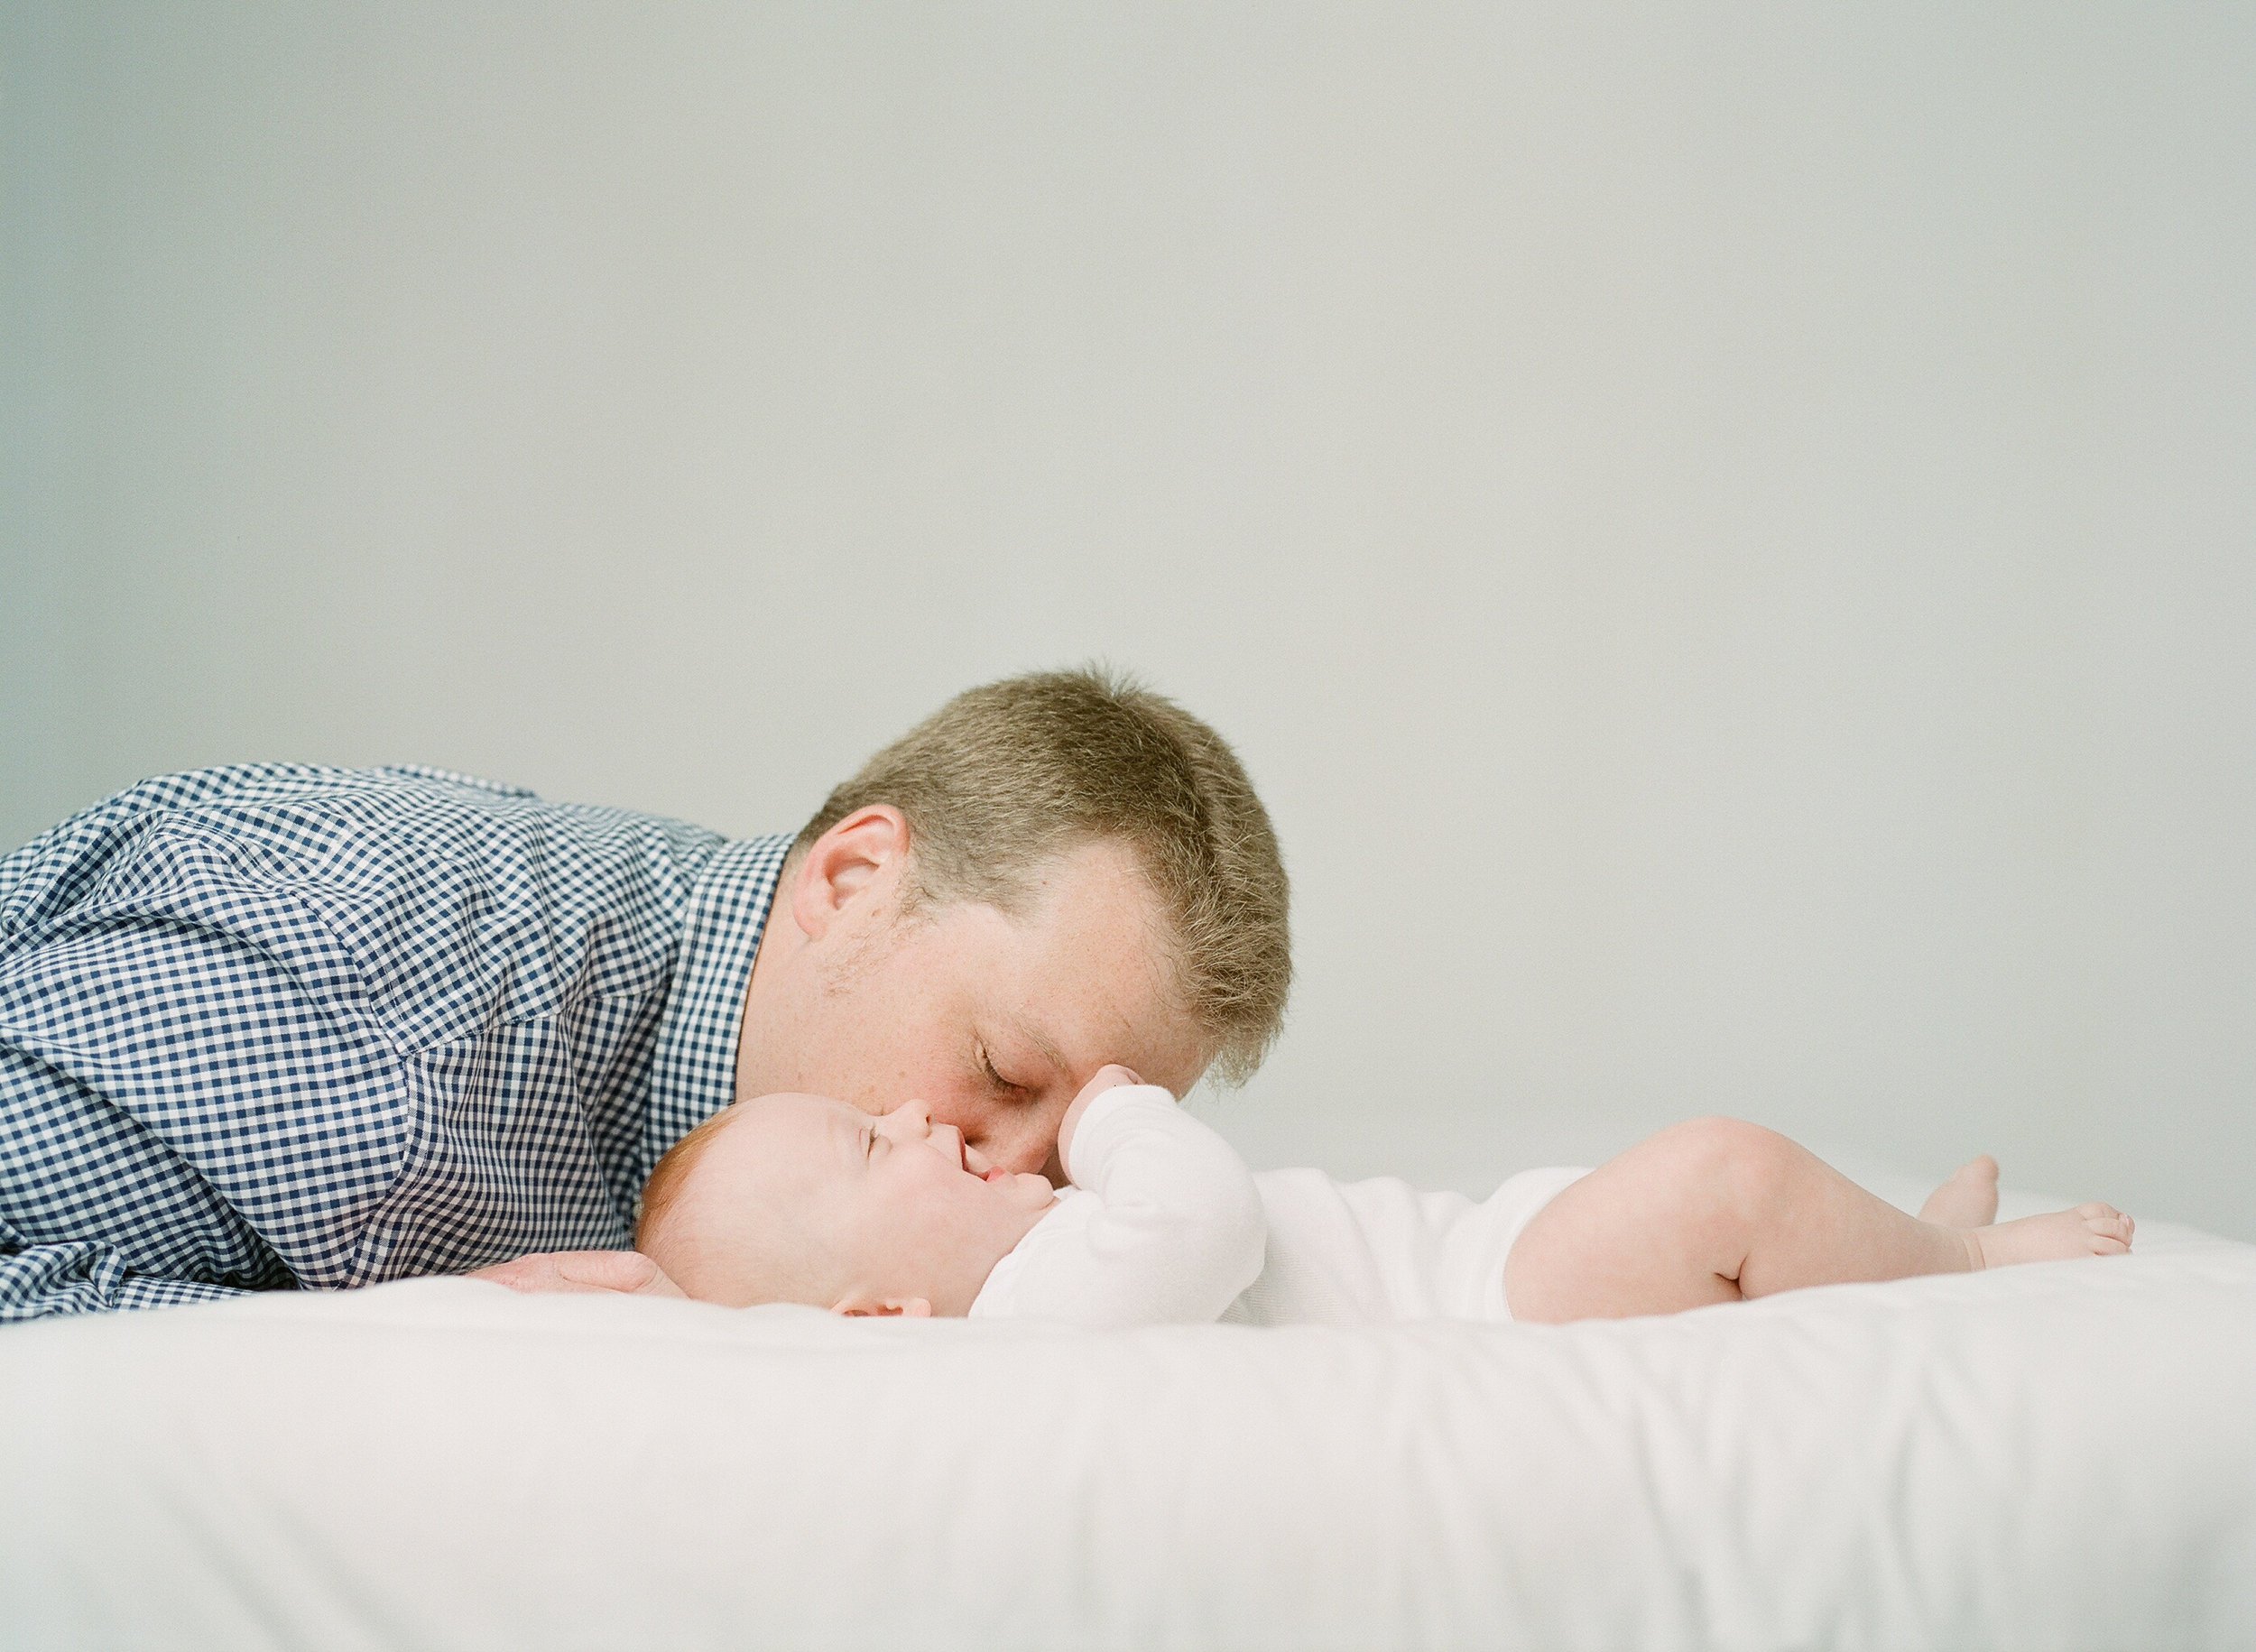 Newborn photographer Seattle | Sandra Coan | fathers and babies on film father's day